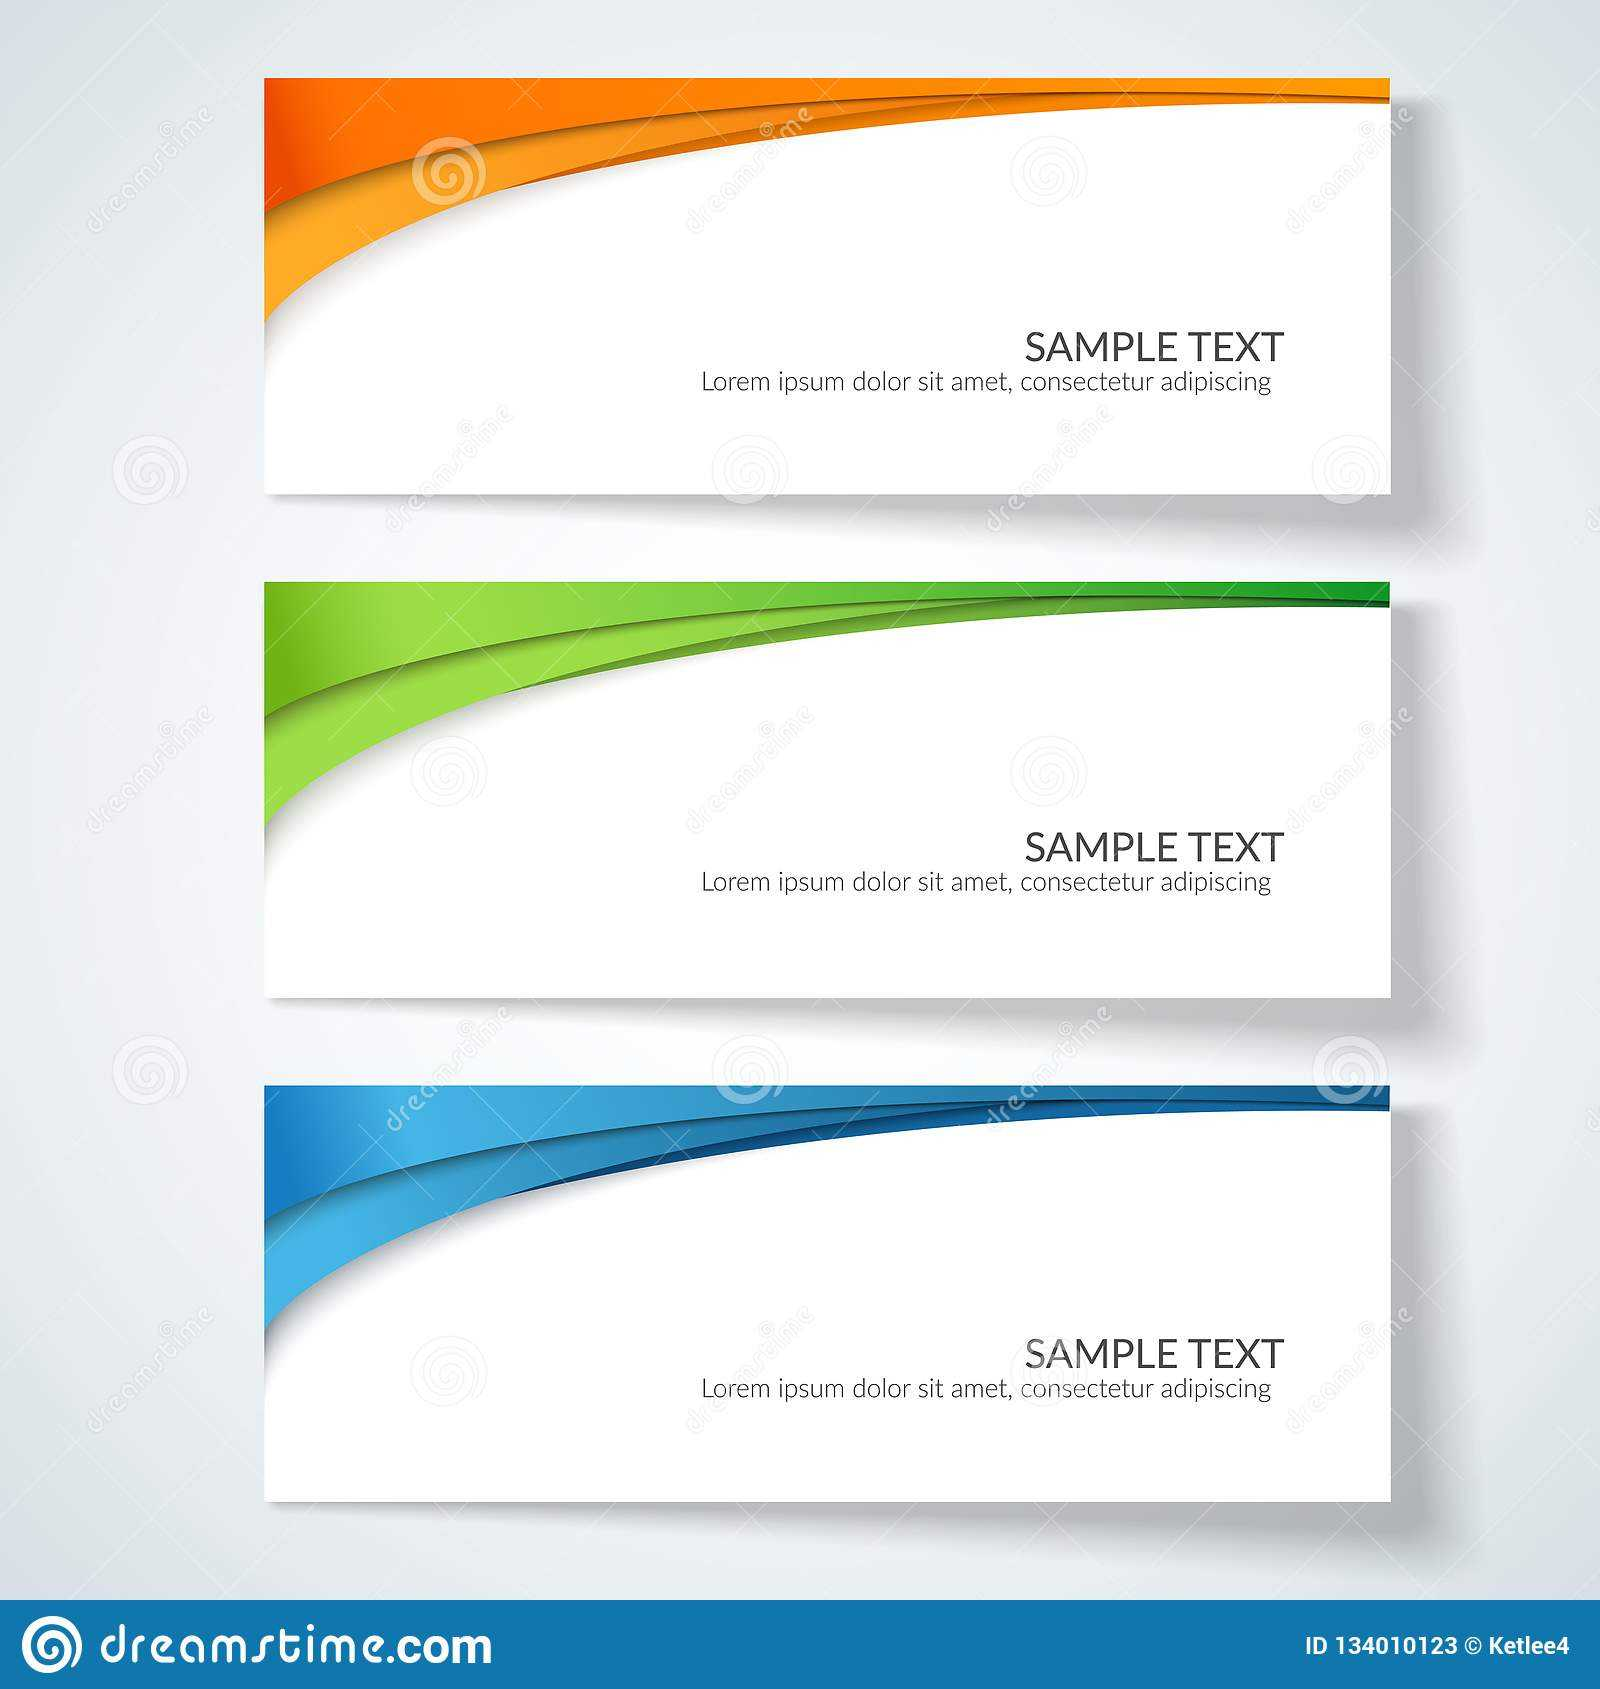 Card With Abstract Wavy Lines Orange Blue Green Stripes Pertaining To Advertising Card Template